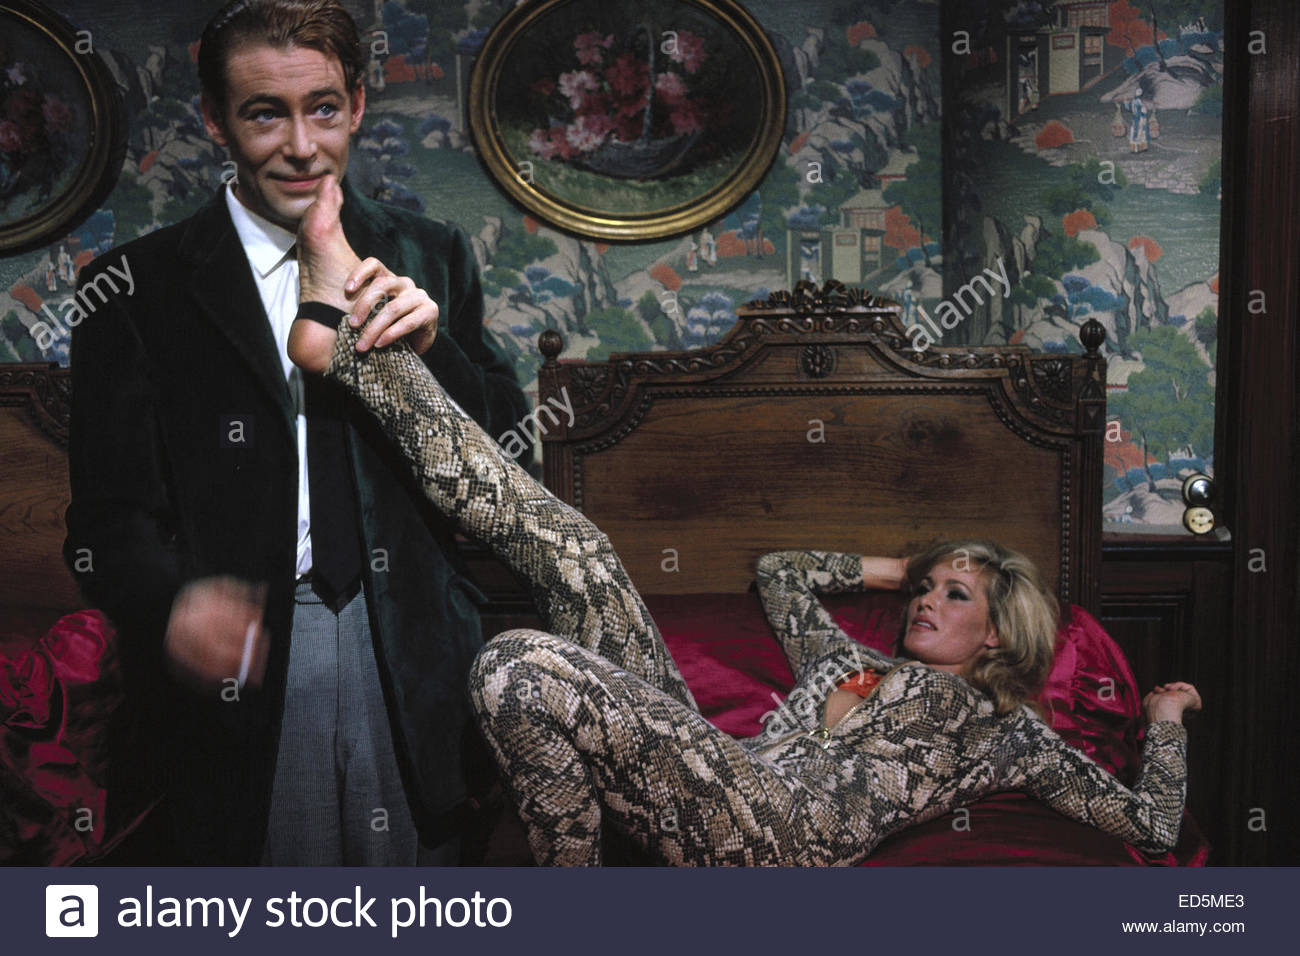 WHAT'S NEW PUSSYCAT (1965). Pictured:   Peter O'Toole & Ursula Andress. Courtesy Granamour Weems Collection. - Stock Image